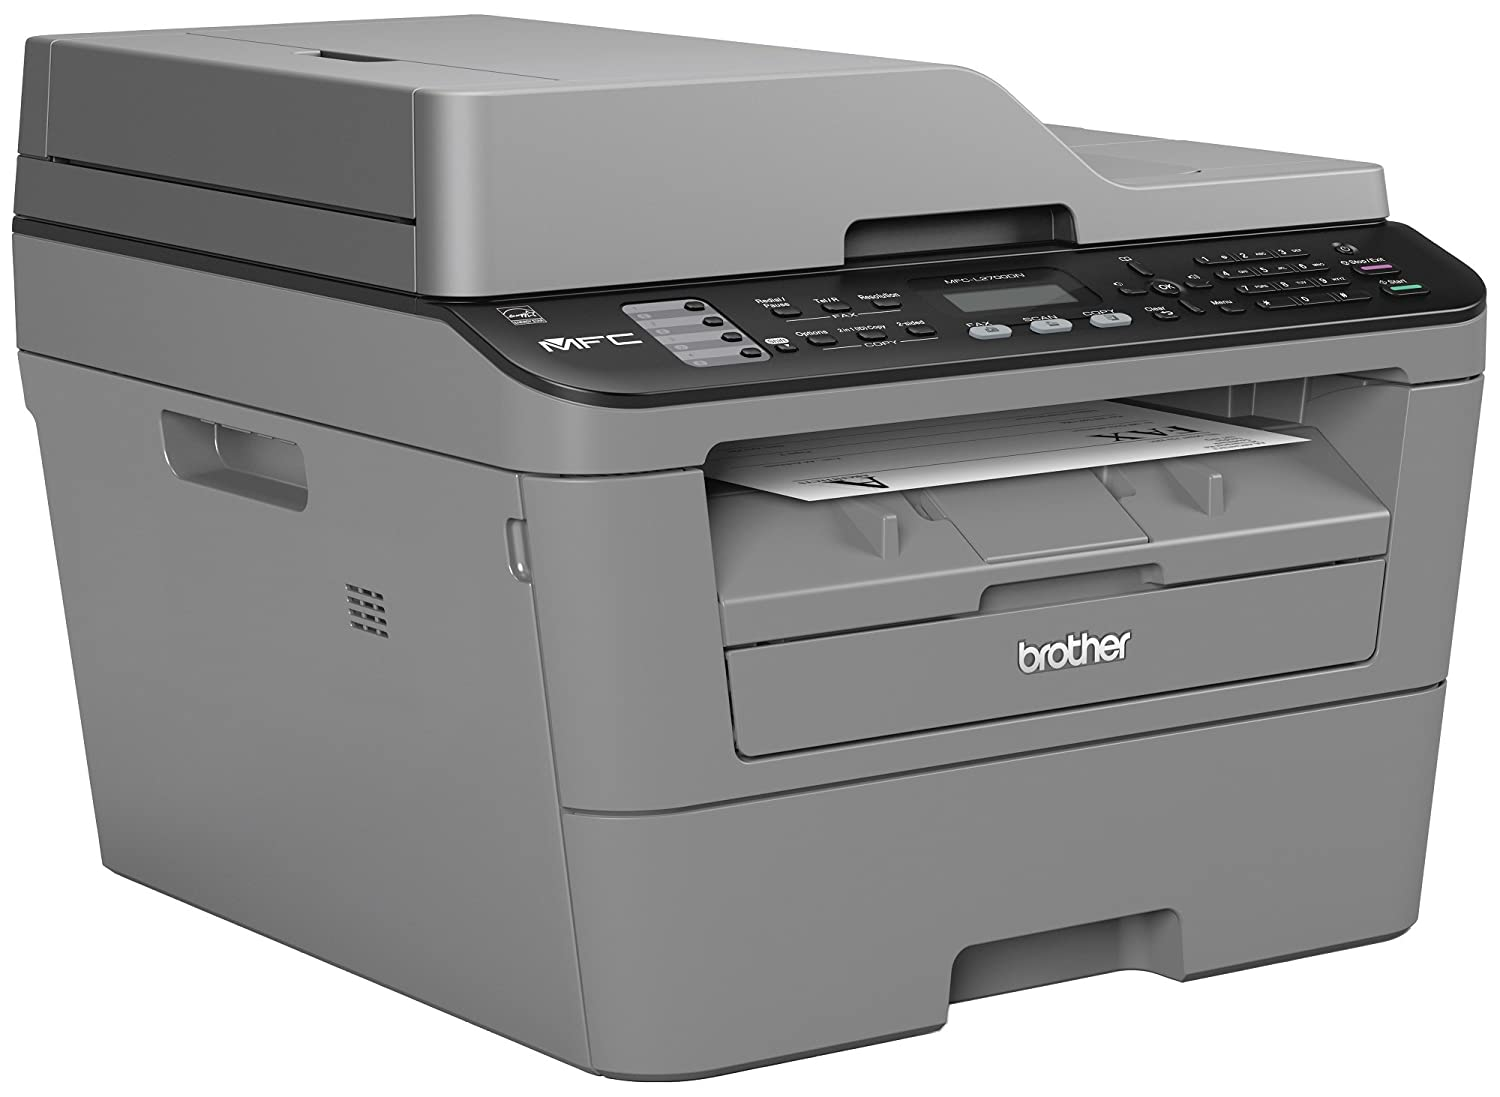 BROTHER FAX-L2700DN DRIVERS FOR WINDOWS 10